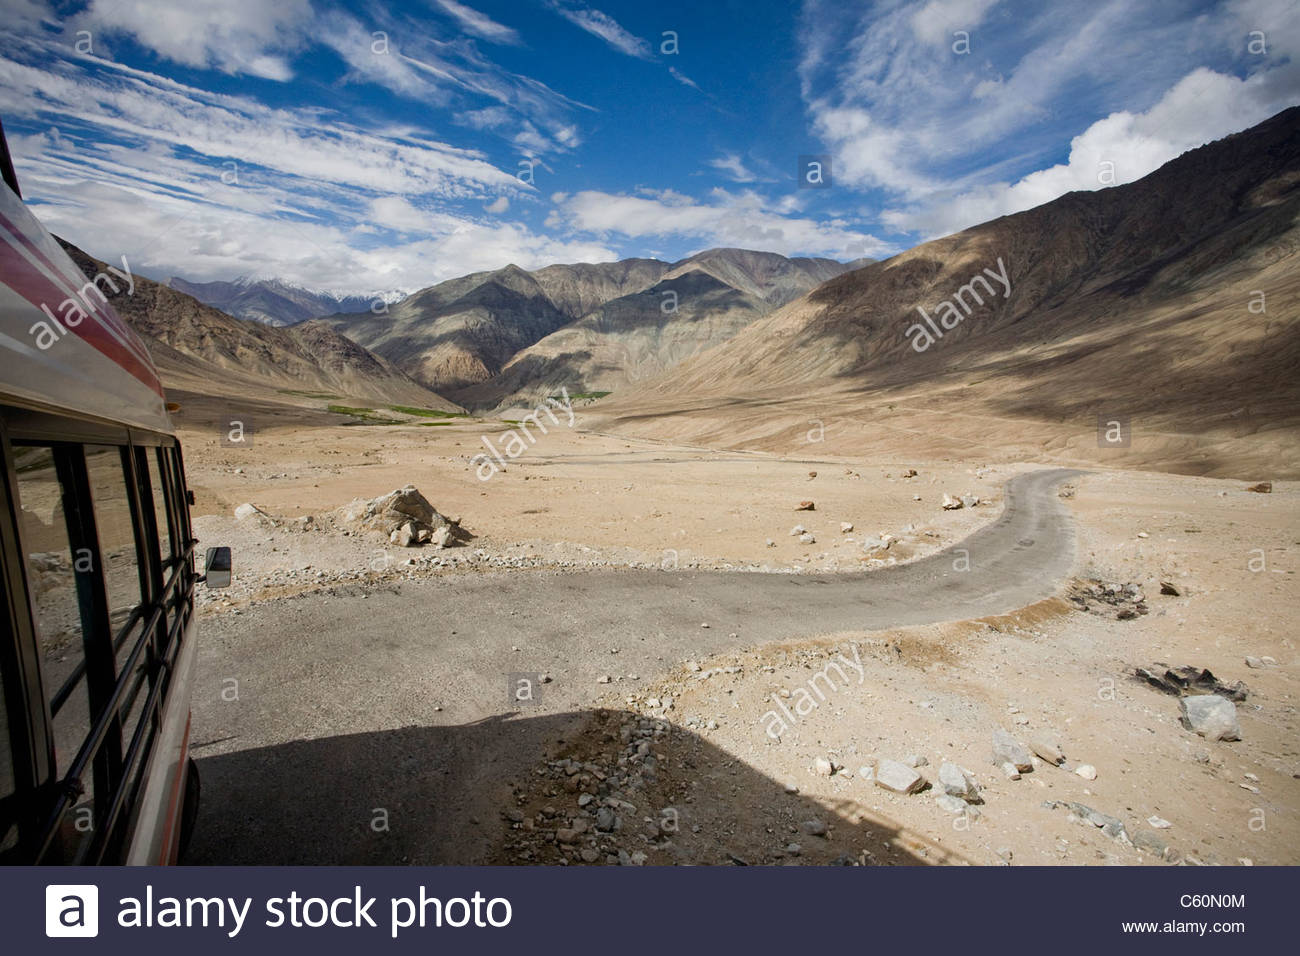 Rural road through desert and mountains - Stock Image